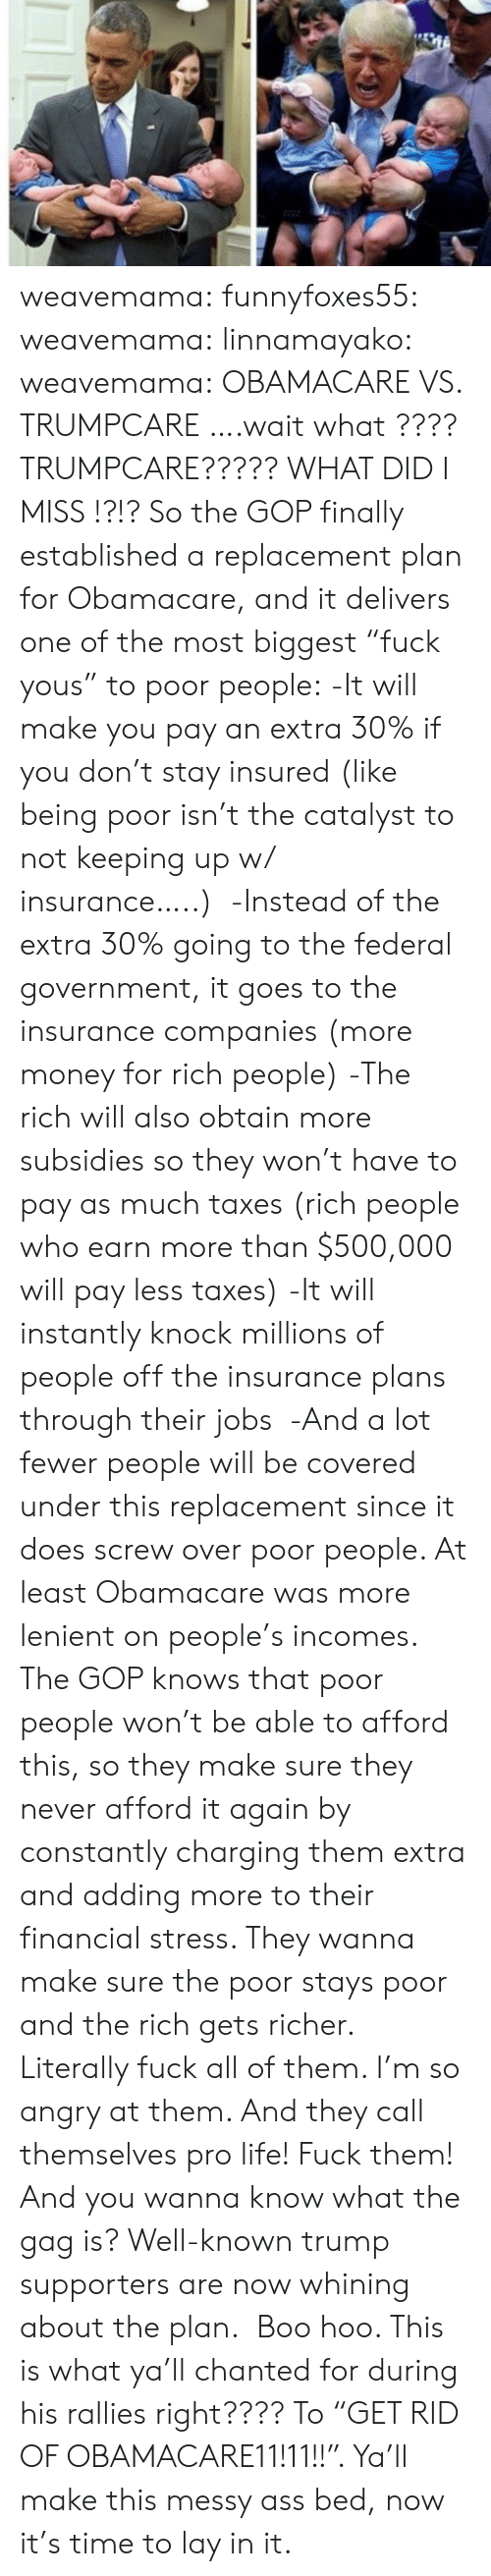 """Ass, Boo, and Life: weavemama:  funnyfoxes55:  weavemama:   linnamayako:  weavemama:  OBAMACARE VS. TRUMPCARE  ….wait what ???? TRUMPCARE????? WHAT DID I MISS !?!?  So the GOP finally established a replacement plan for Obamacare, and it delivers one of the most biggest""""fuck yous"""" to poor people: -It will make you pay an extra 30% if you don't stay insured (like being poor isn't the catalyst to not keeping up w/ insurance…..) -Instead of the extra 30% going to the federal government, it goes to the insurance companies (more money for rich people) -The rich will also obtain more subsidies so they won't have to pay as much taxes(rich people who earn more than $500,000 will pay less taxes) -It will instantly knock millions of people off the insurance plans through their jobs -And a lot fewer people will be covered under this replacement since it does screw over poor people. At least Obamacare was more lenient on people's incomes. The GOP knows that poor people won't be able to afford this, so they make sure they never afford it again by constantly charging them extra and adding more to their financial stress. They wanna make sure the poor stays poor and the rich gets richer.   Literally fuck all of them. I'm so angry at them. And they call themselves pro life! Fuck them!  And you wanna know what the gag is? Well-known trump supporters are now whining about the plan. Boo hoo. This is what ya'll chanted for during his rallies right???? To""""GET RID OF OBAMACARE11!11!!"""". Ya'll make this messy ass bed, now it's time to lay in it."""